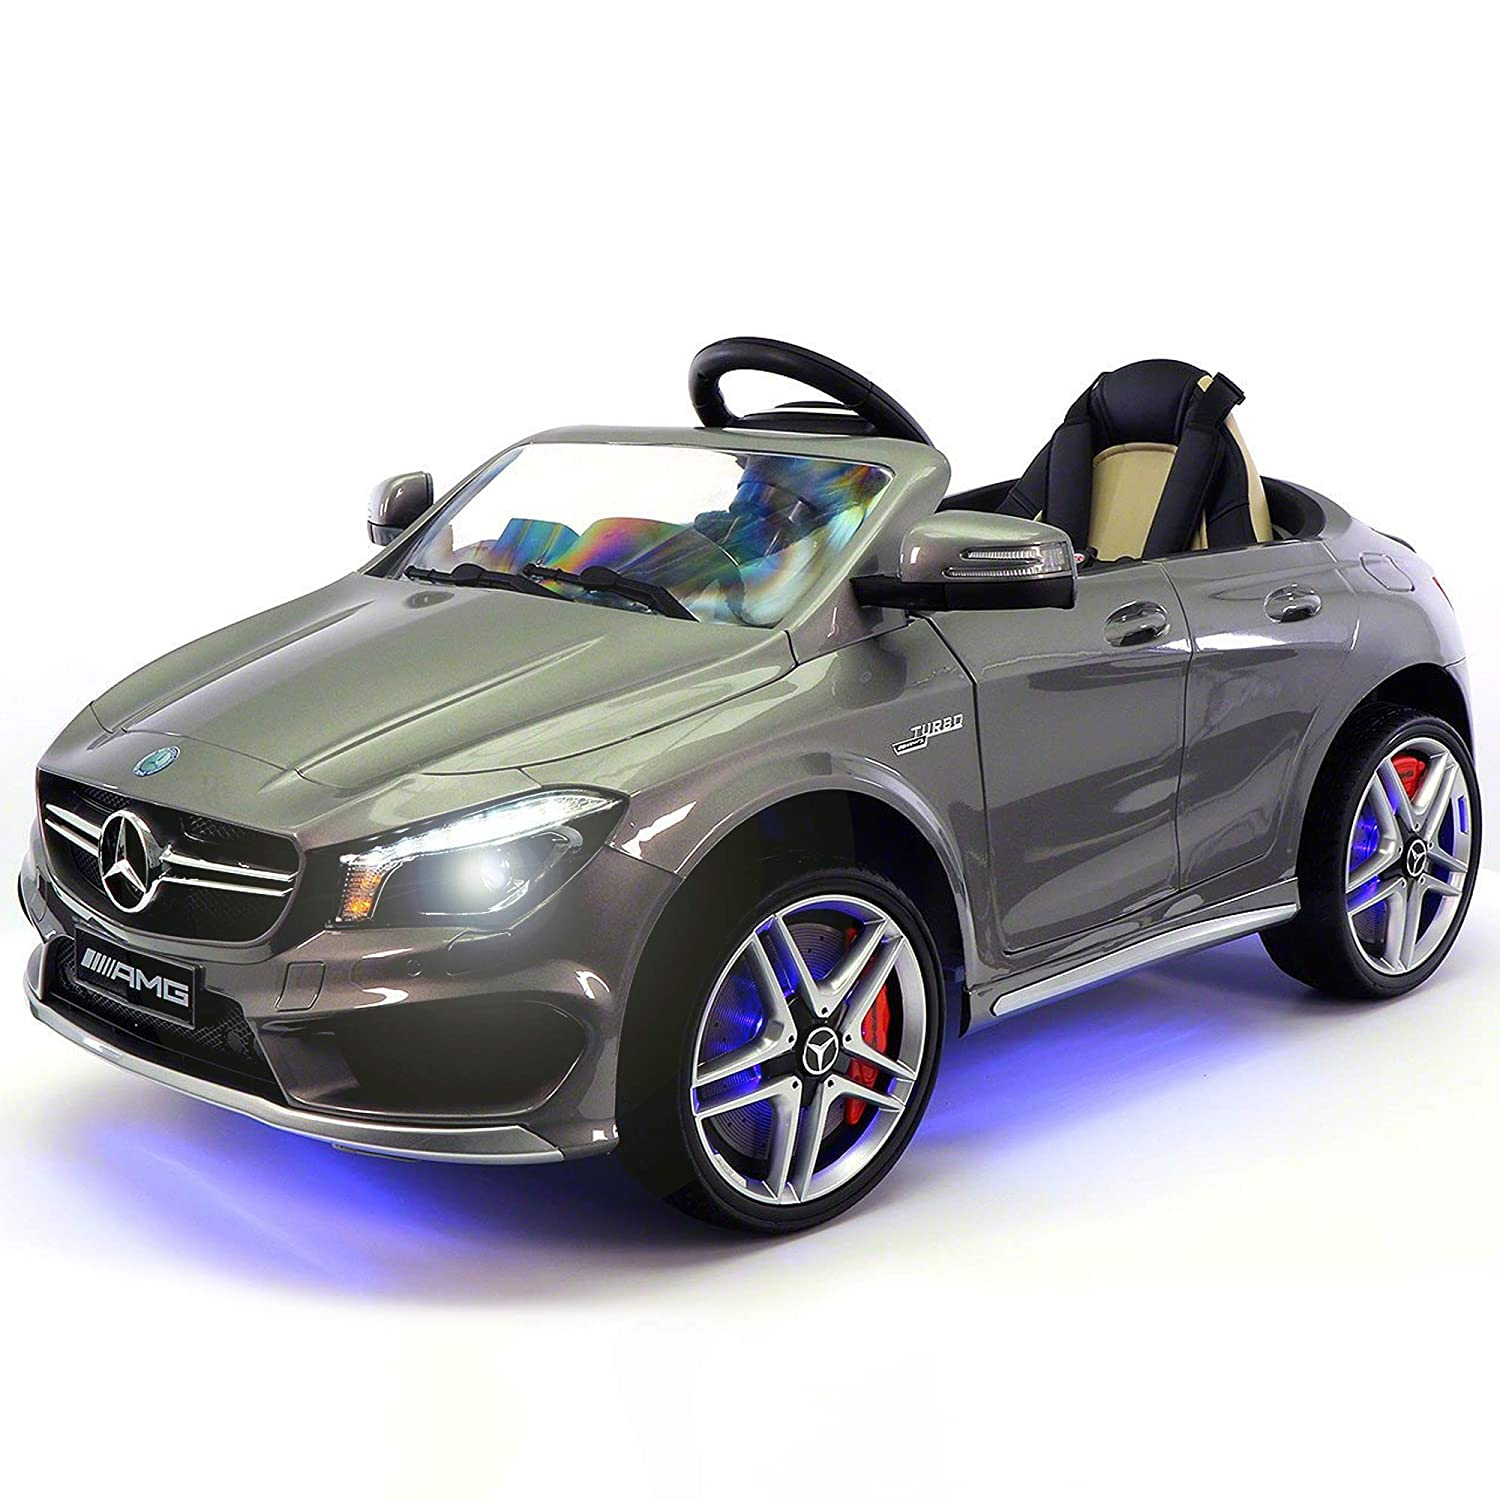 Car For Kids >> 2019 Mercedes Benz Cla 12v Ride On Car For Kids 12v Engine Power Licensed Kid Car To Drive With Remote Dining Table Leather Seat Openable Doors